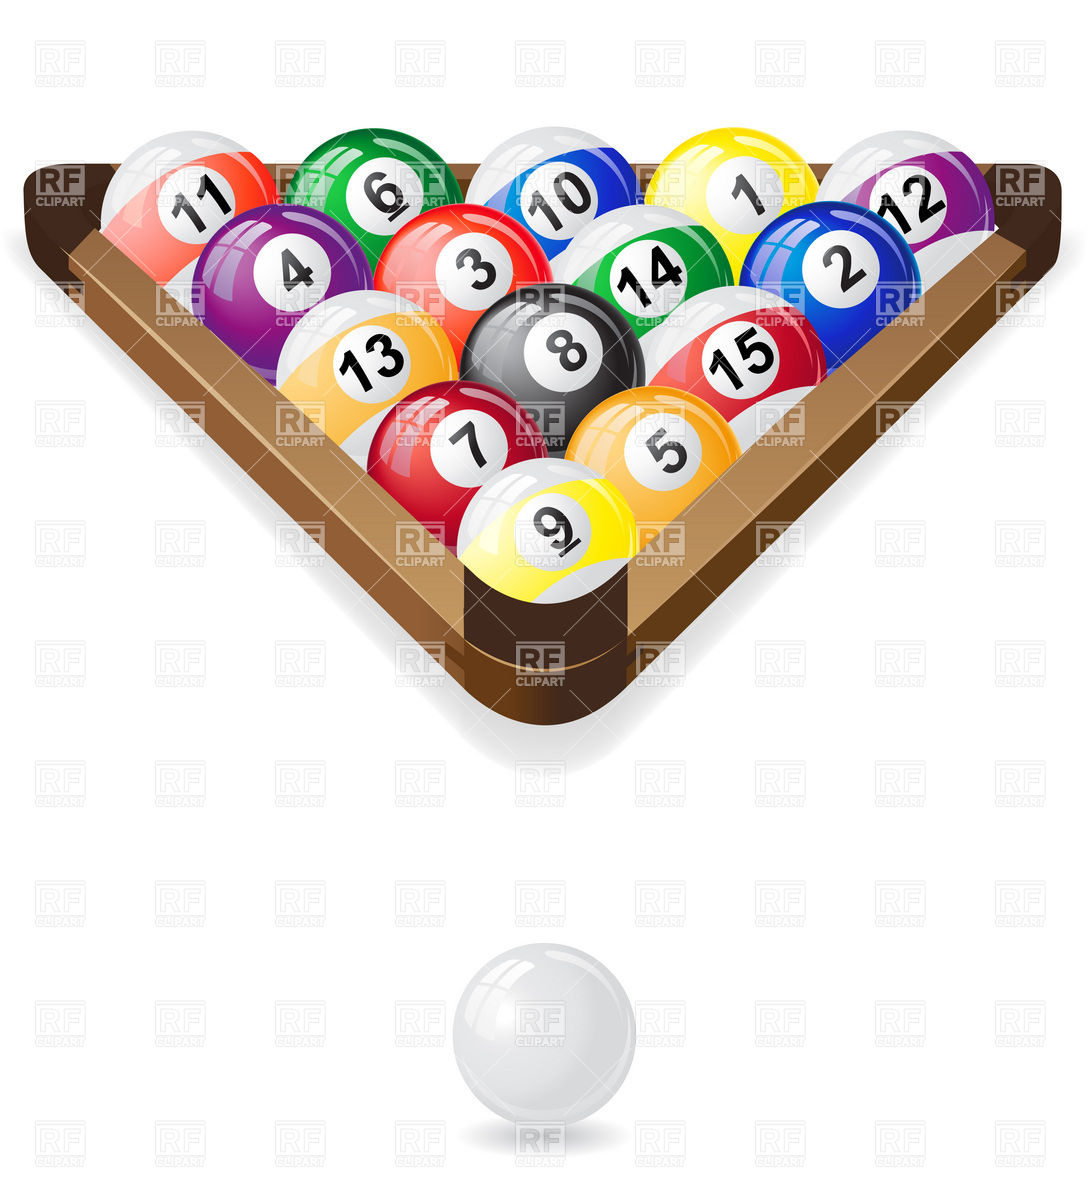 Three-cornered snooker rack setup with balls Royalty Free Vector Clip Art